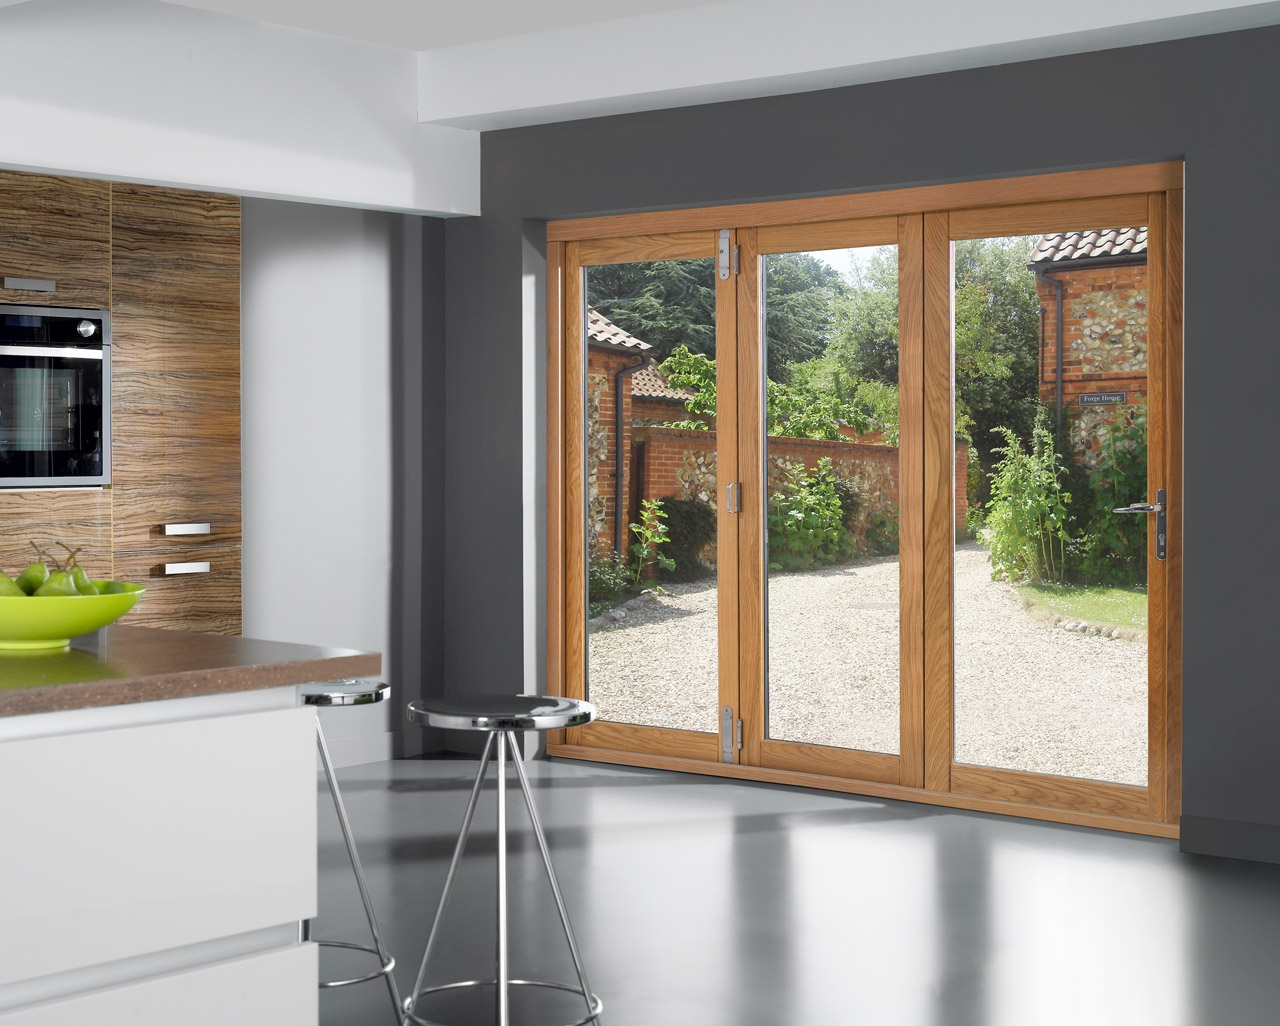 8 Foot Sliding Glass Doors Sliding Doors